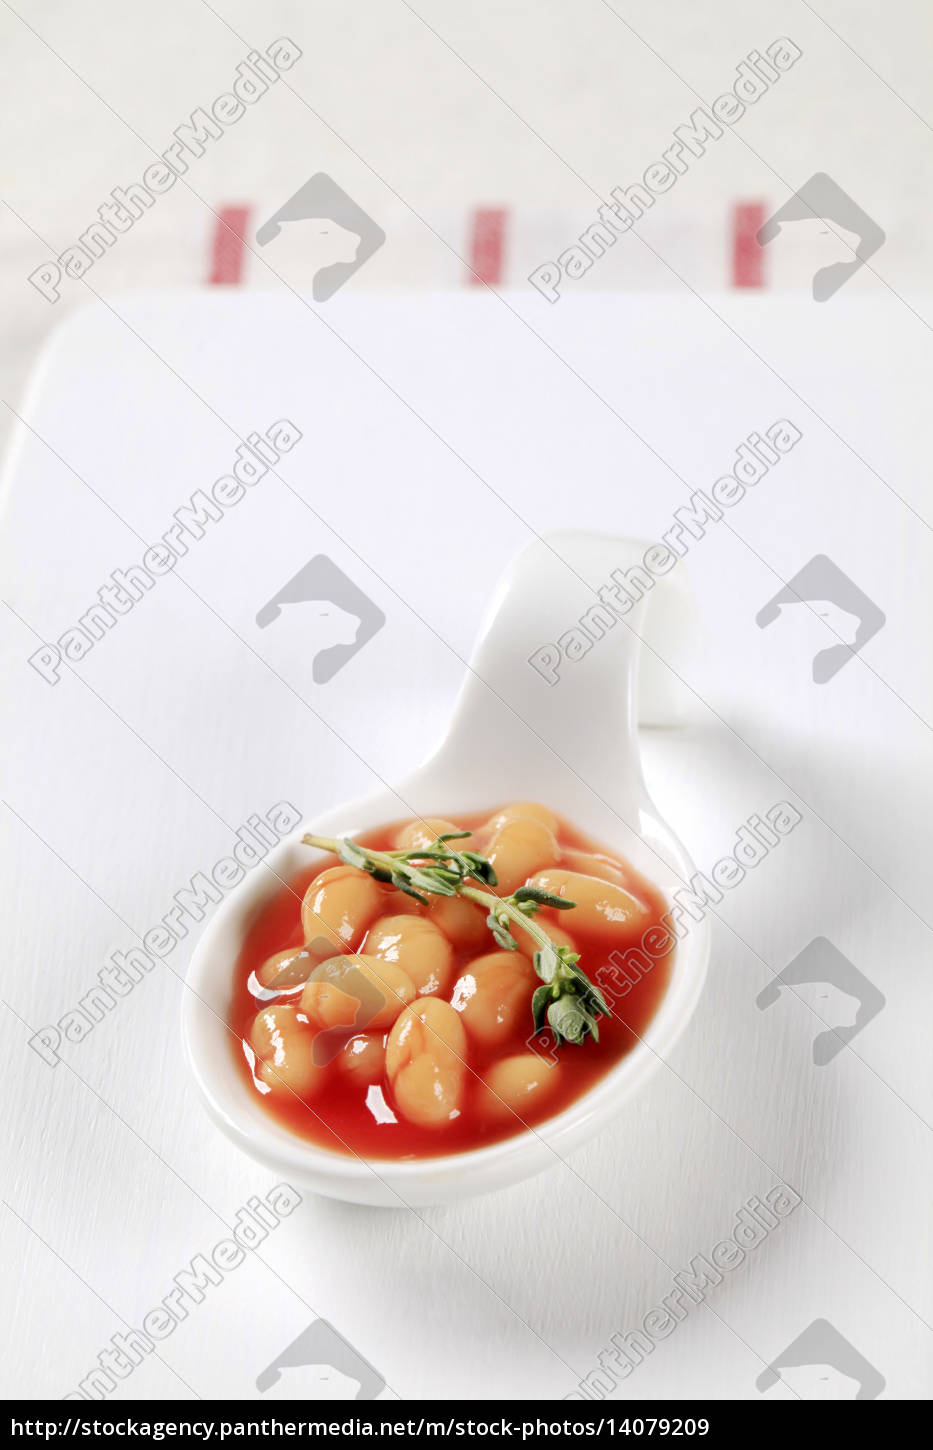 baked, beans - 14079209